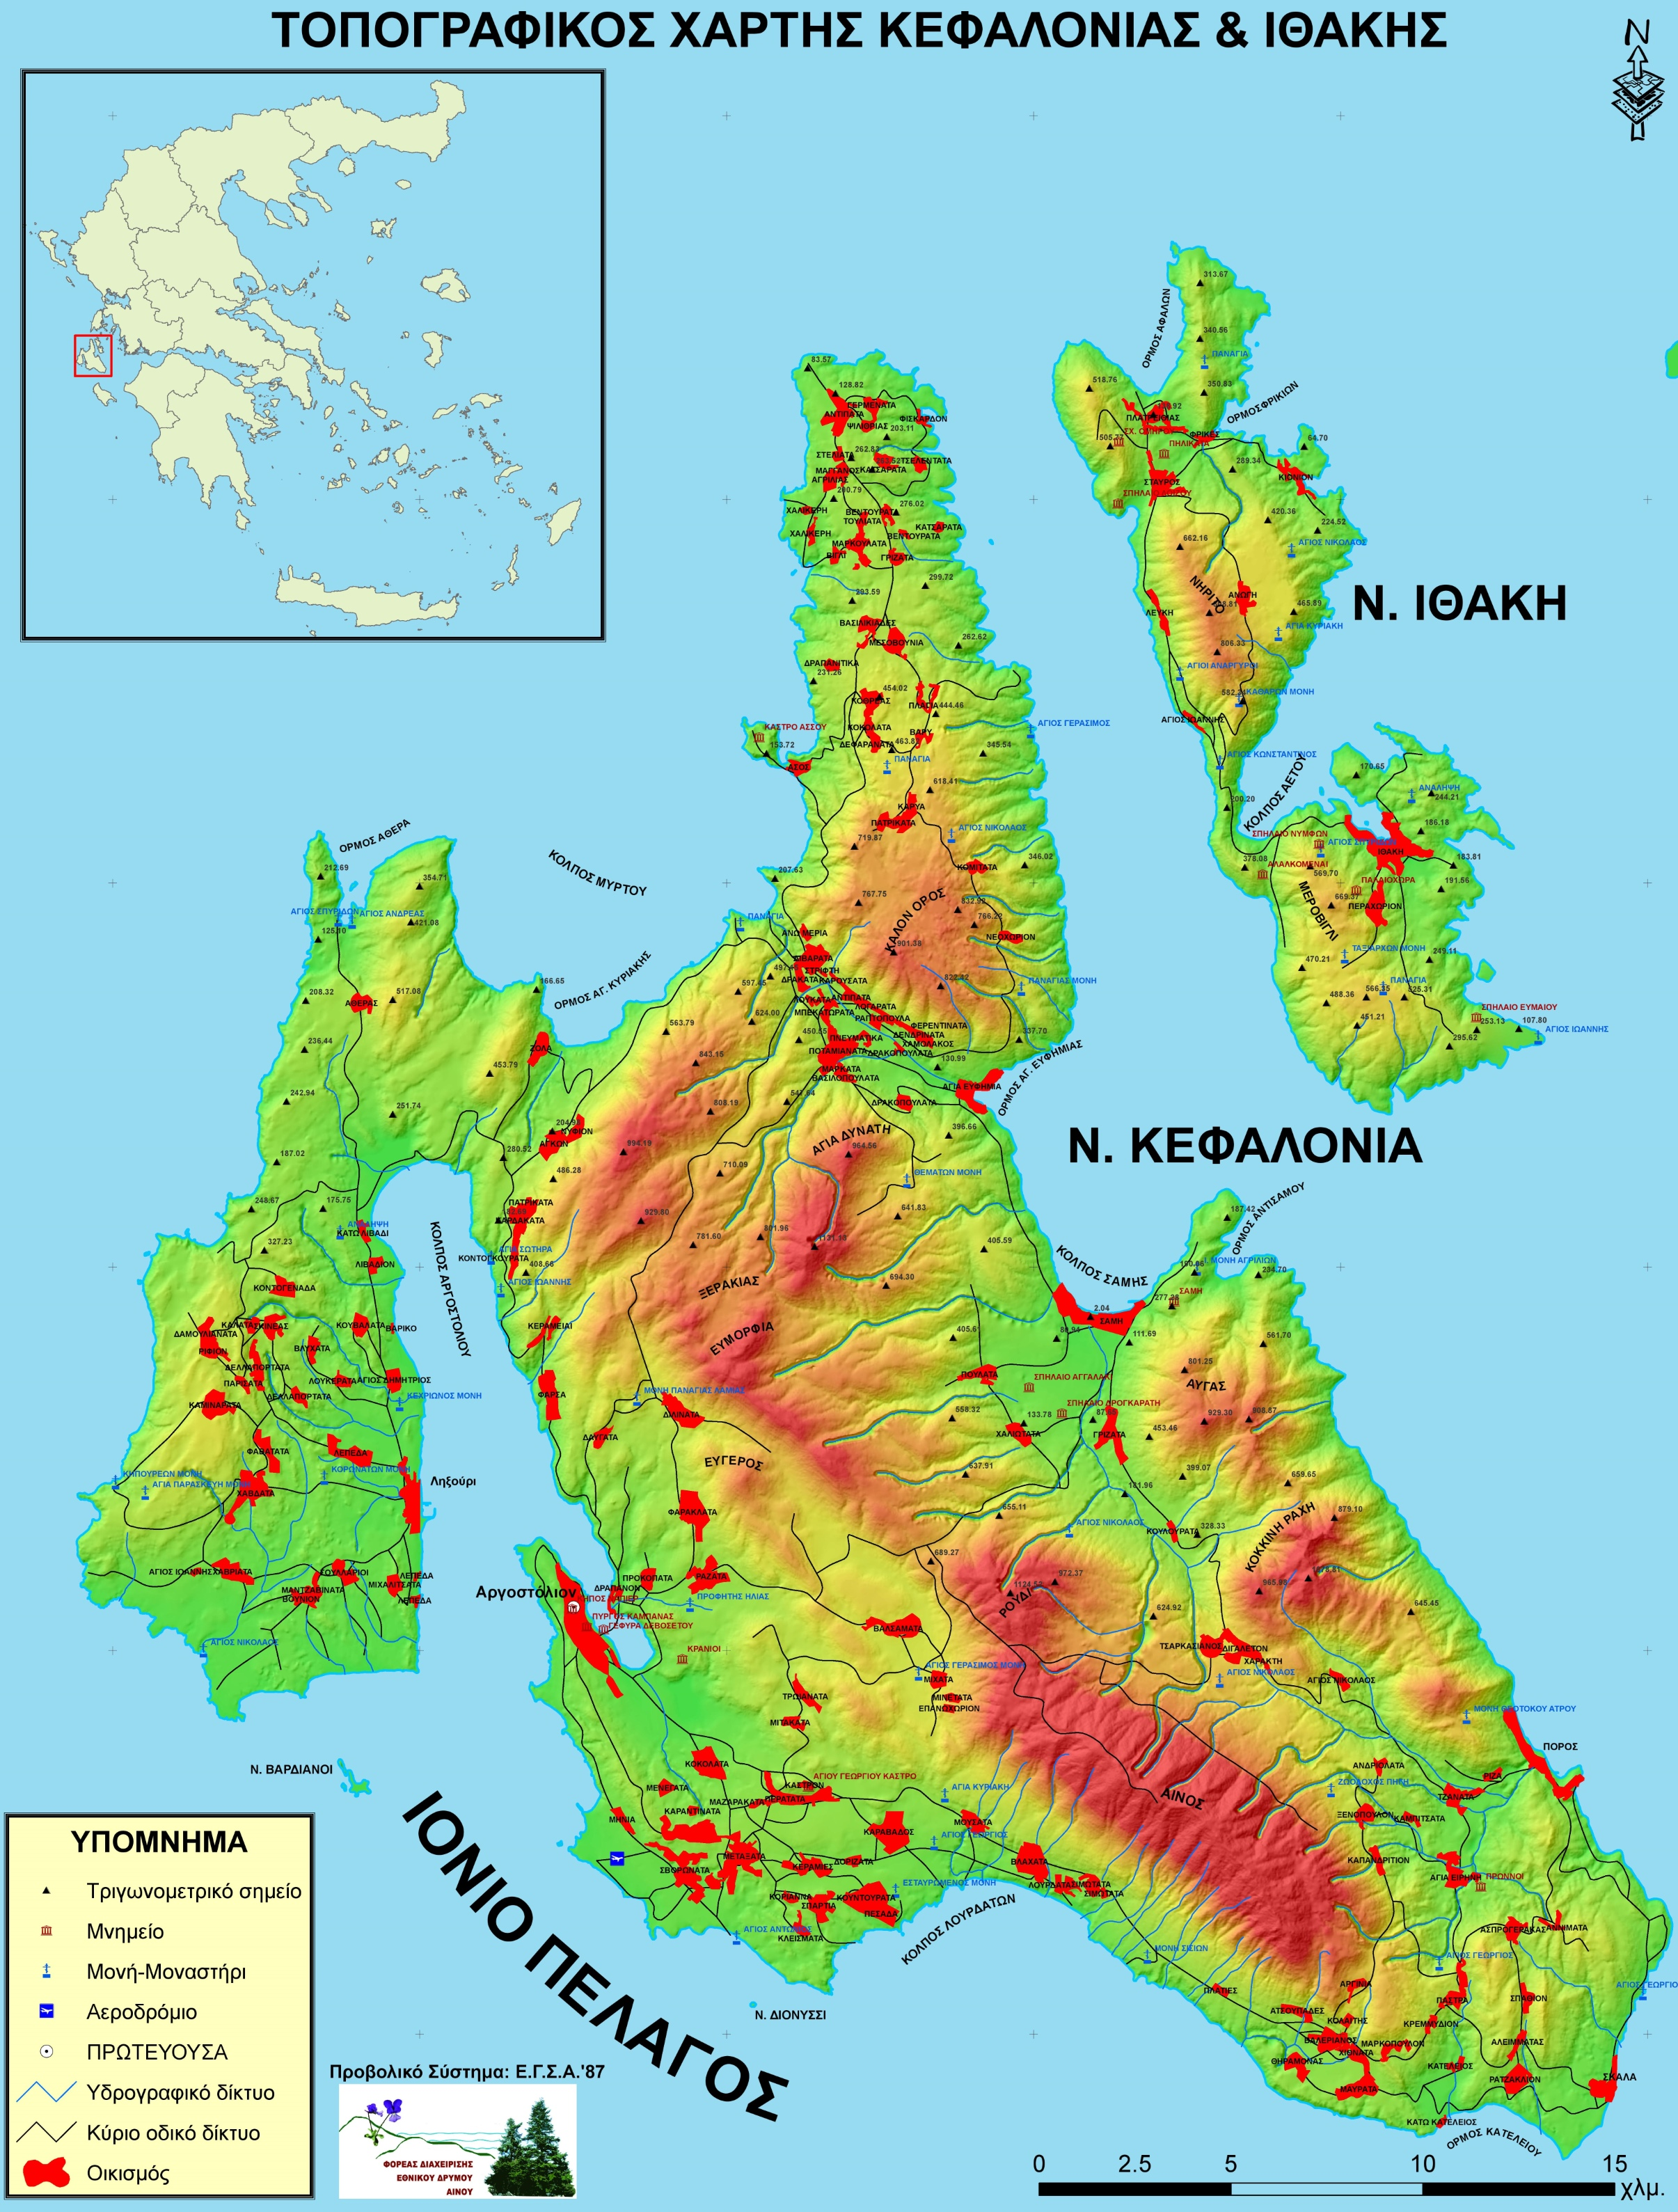 Kefalonia Topographic Map - Topographic map of the world